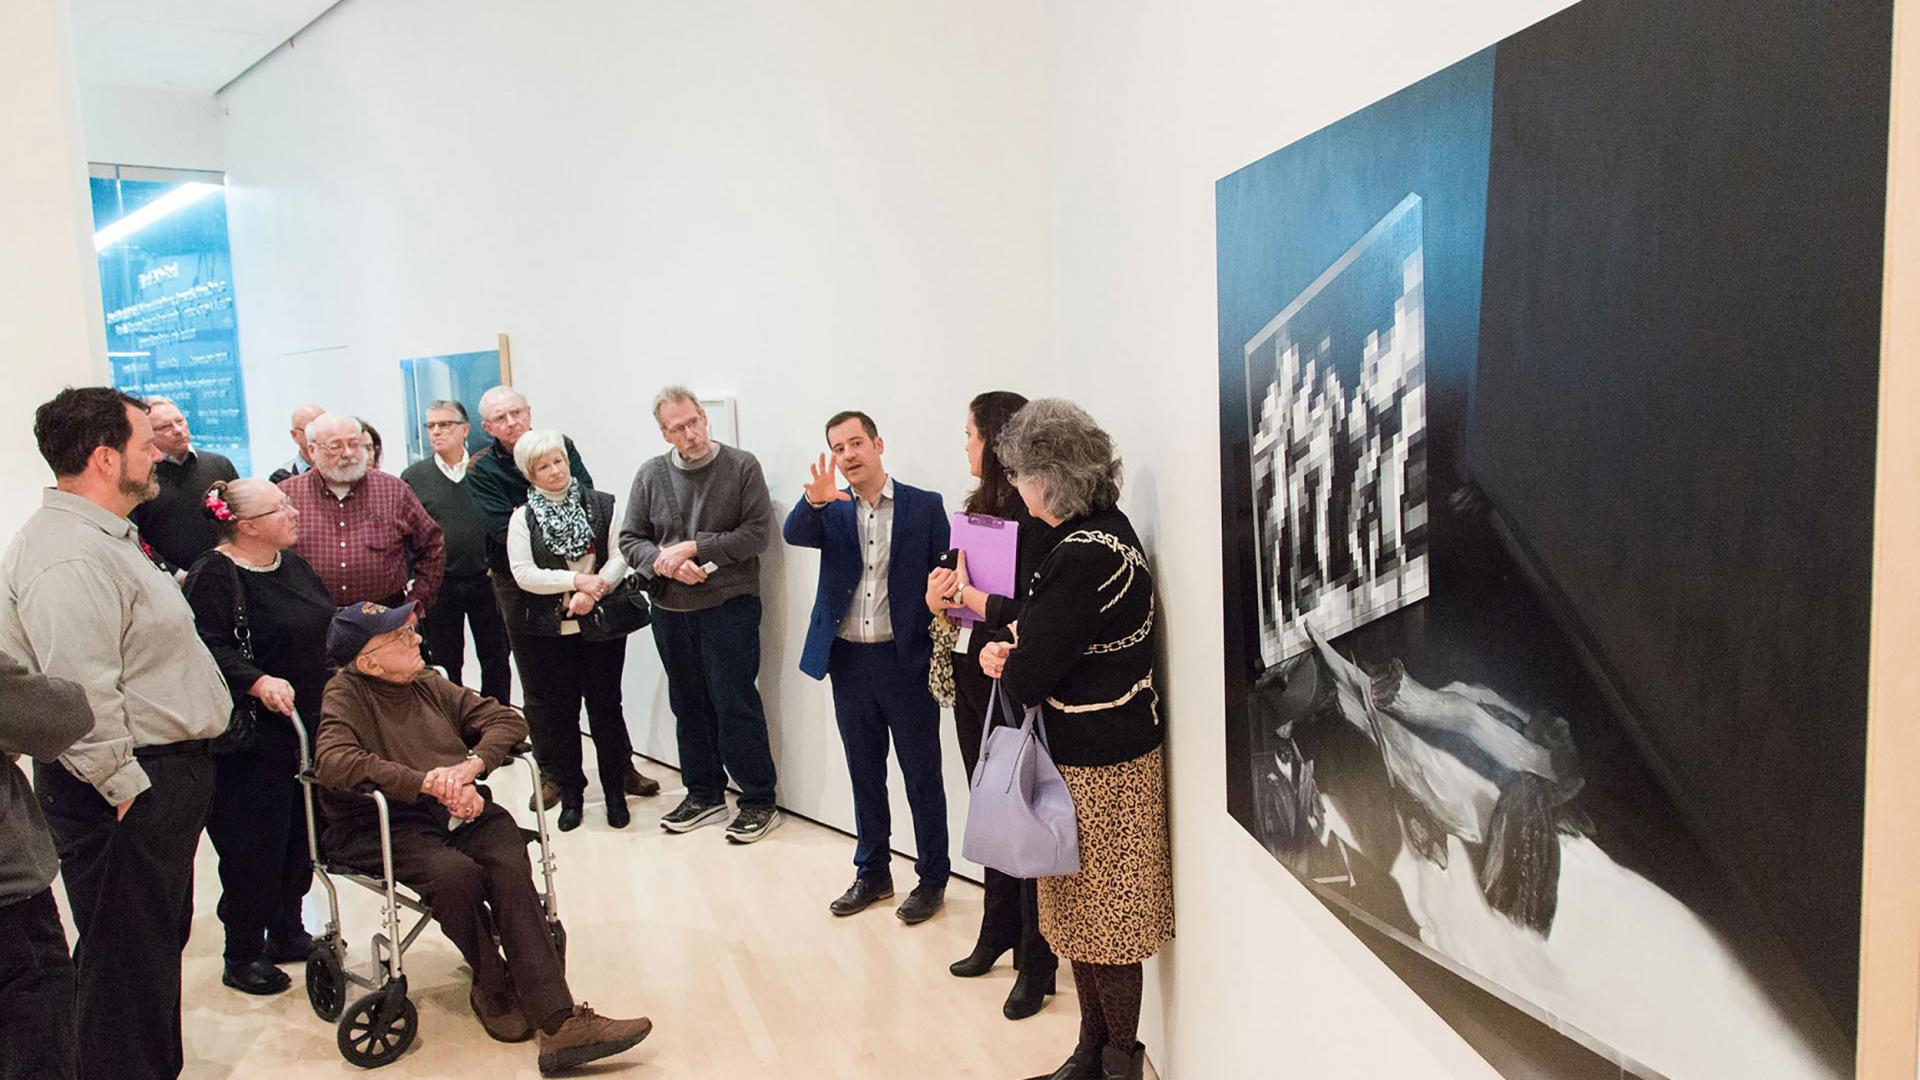 Group of adults listening to a lecture in a gallery